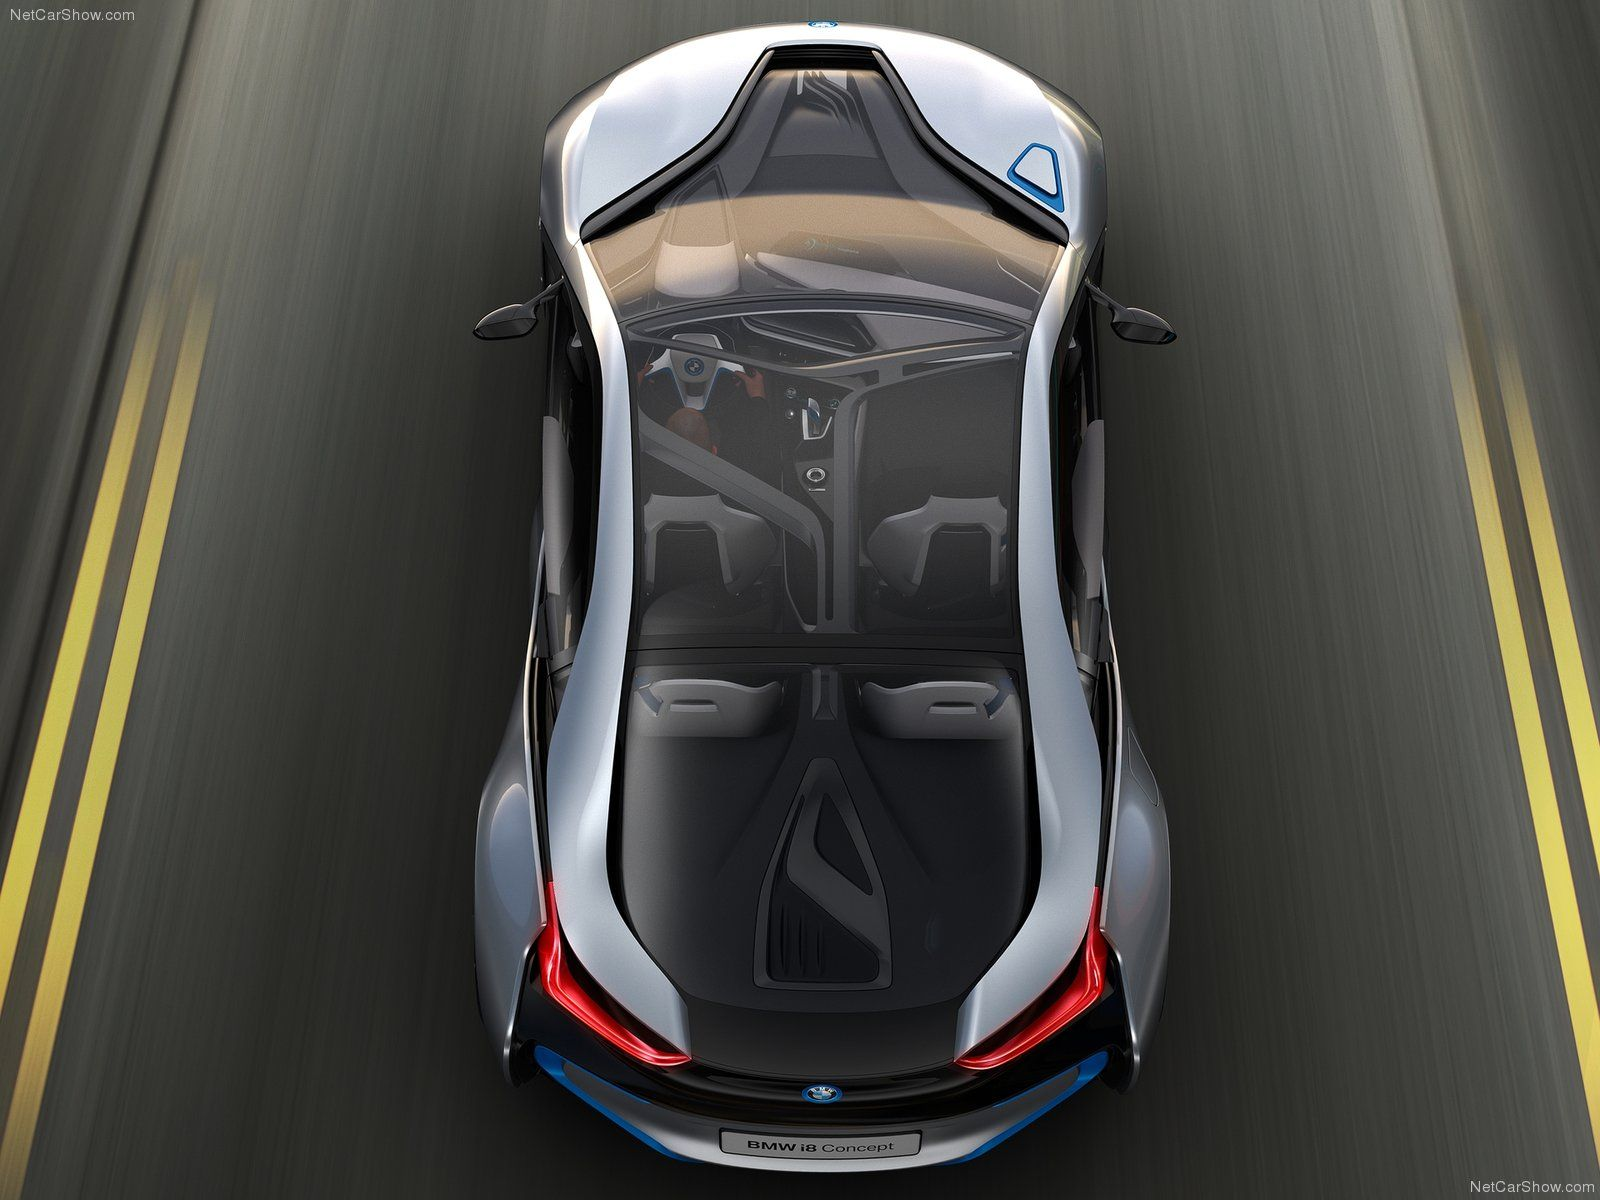 BMW i8 Top view shows full lenght clear roof sunroof body design